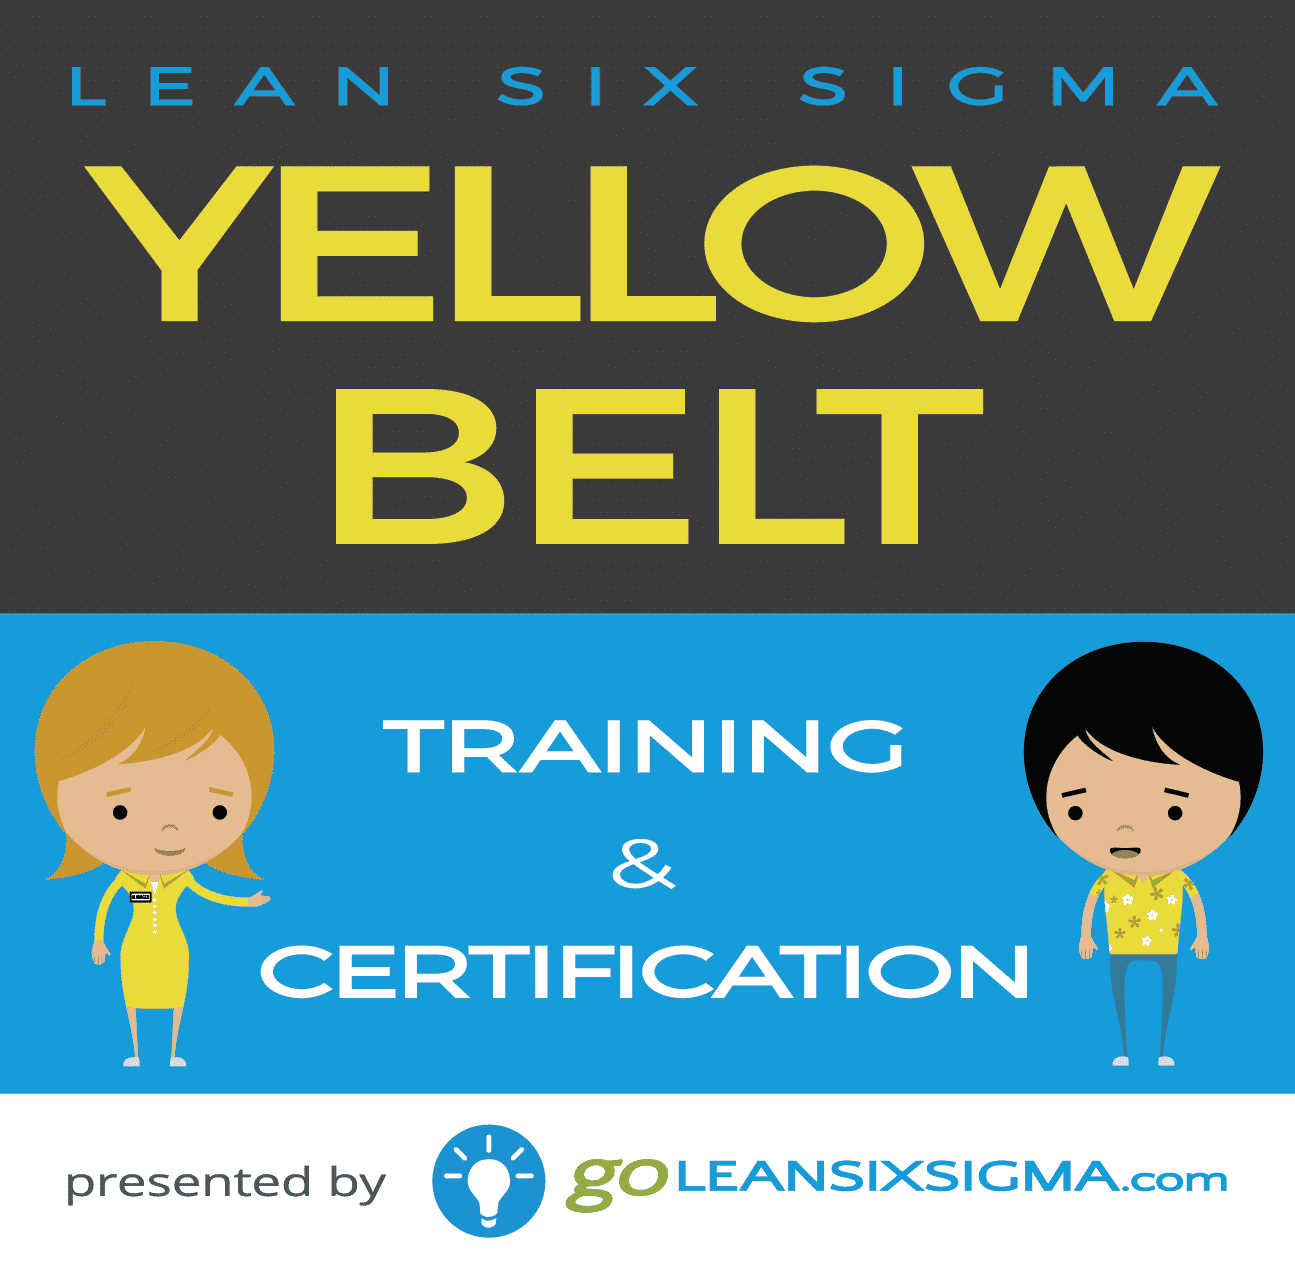 Box Training Certification Yellow Belt GoLeanSixSigma.com